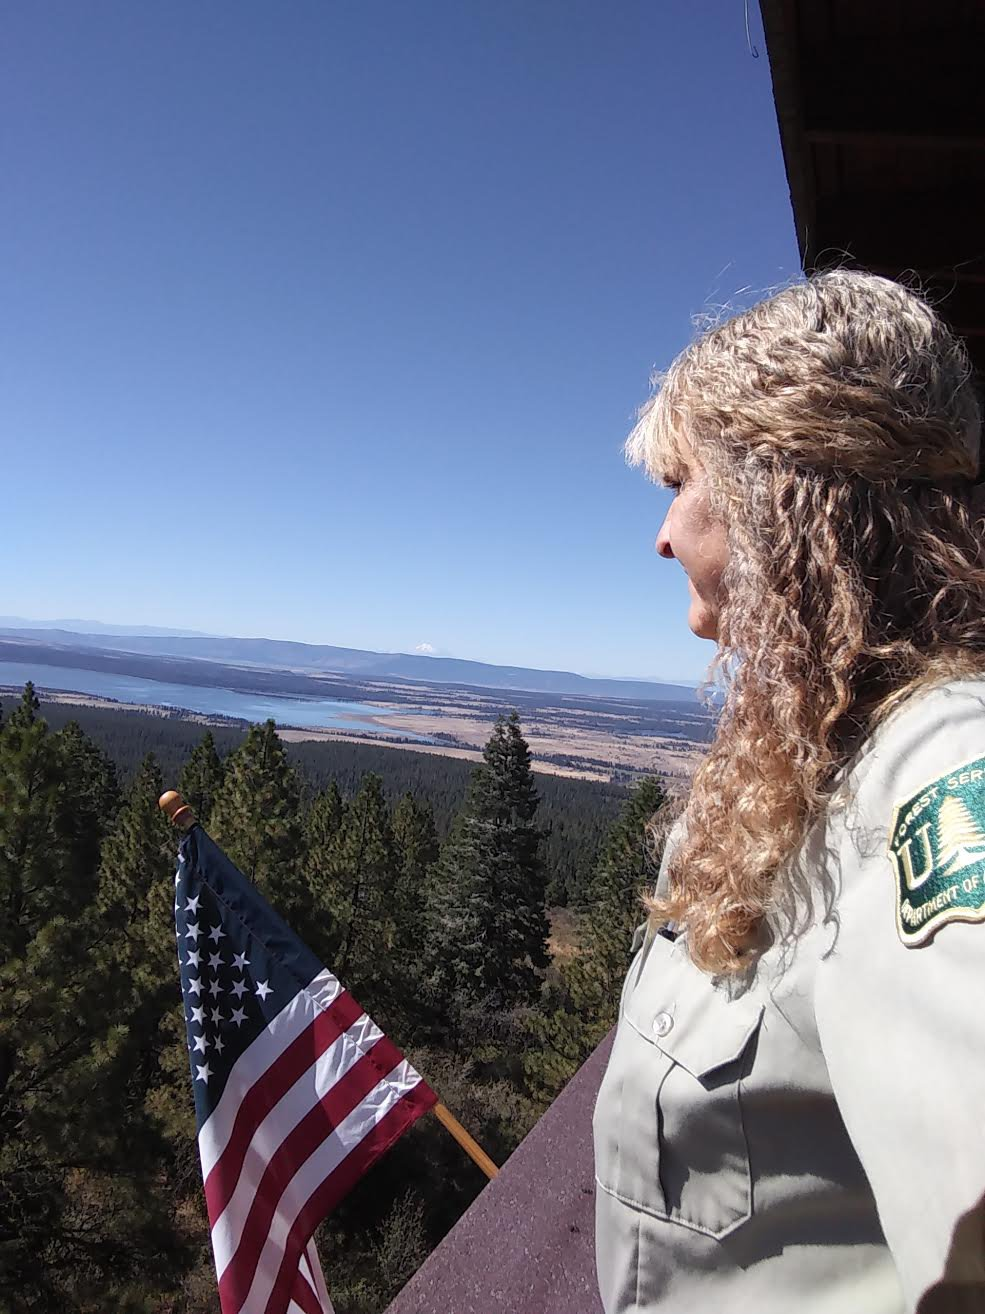 Female Fire Lookouts Have Been Saving the Wilderness for Over a Century